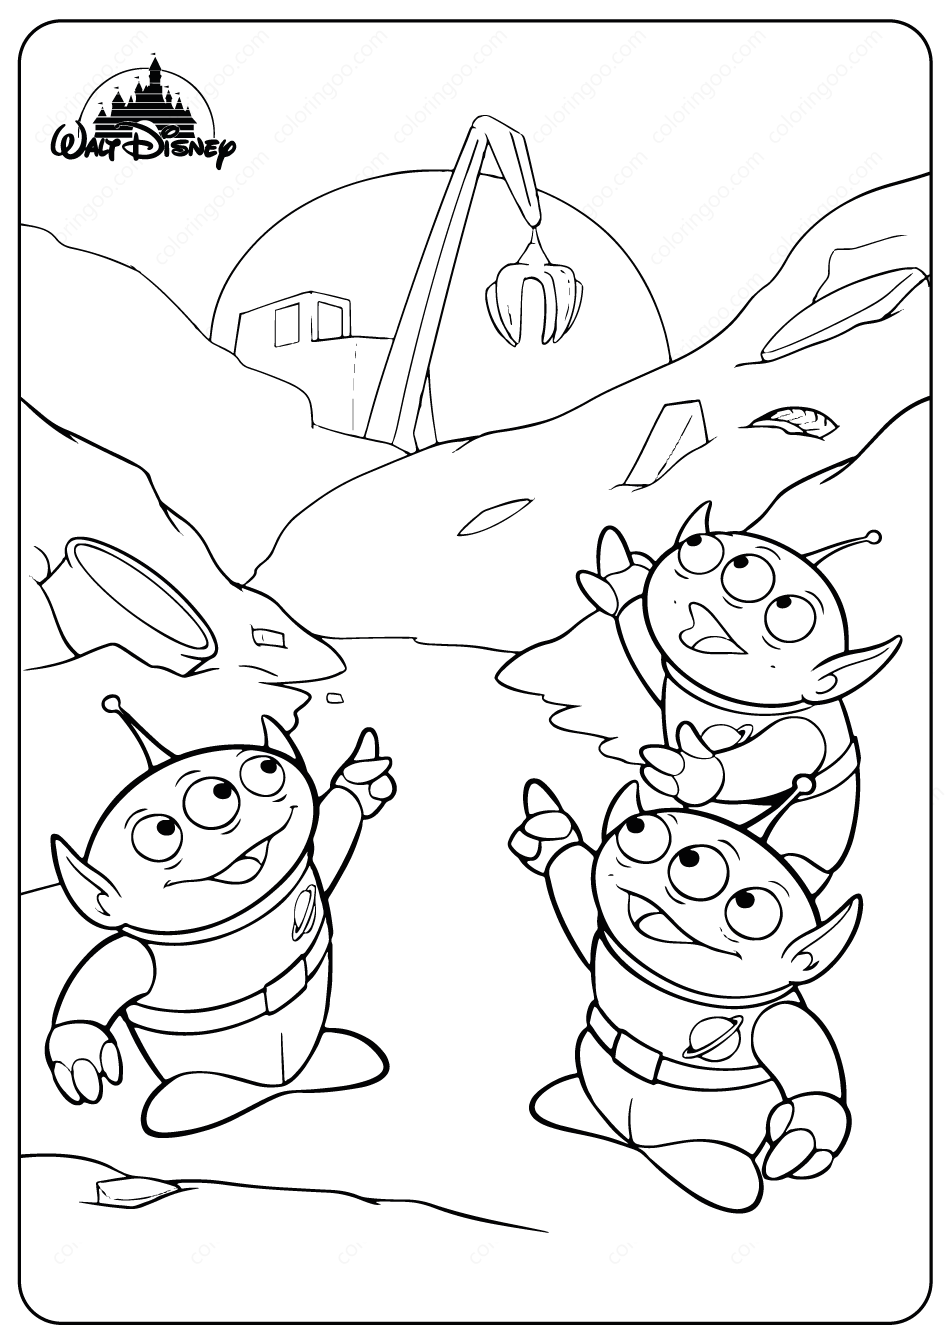 Toy Story Aliens Coloring Pages Toy Story Coloring Pages Coloring Pages Toy Story Alien